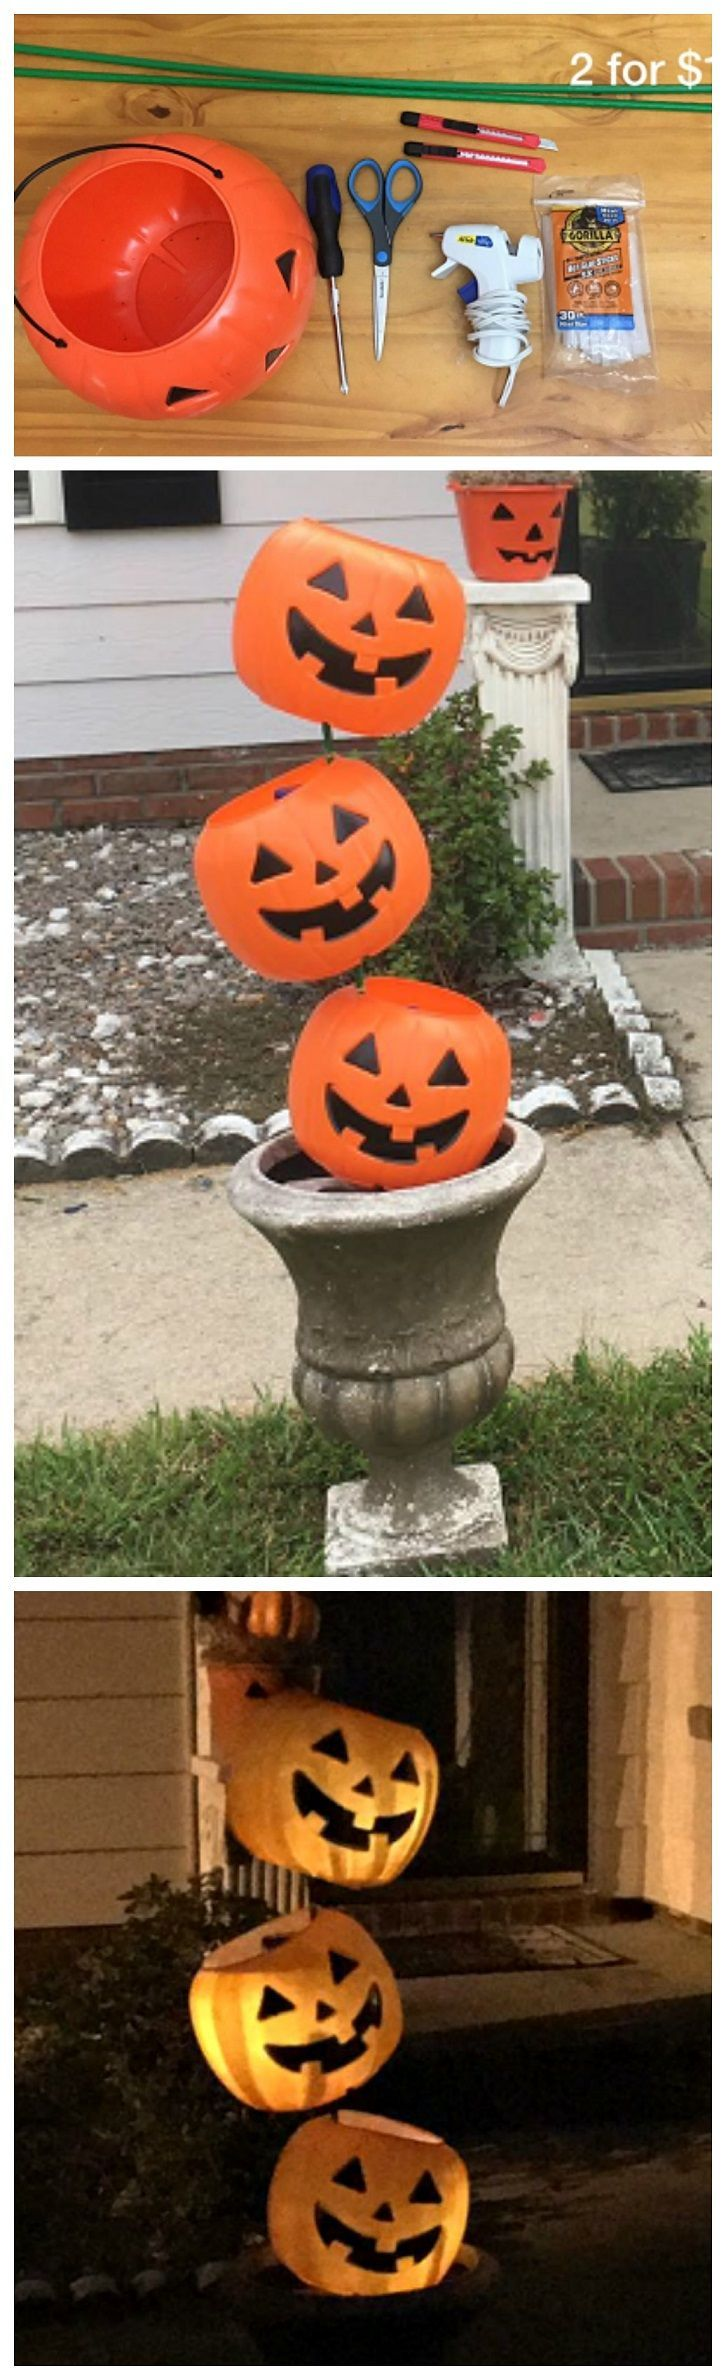 Best 25+ Halloween stuff ideas on Pinterest | Halloween diy ...